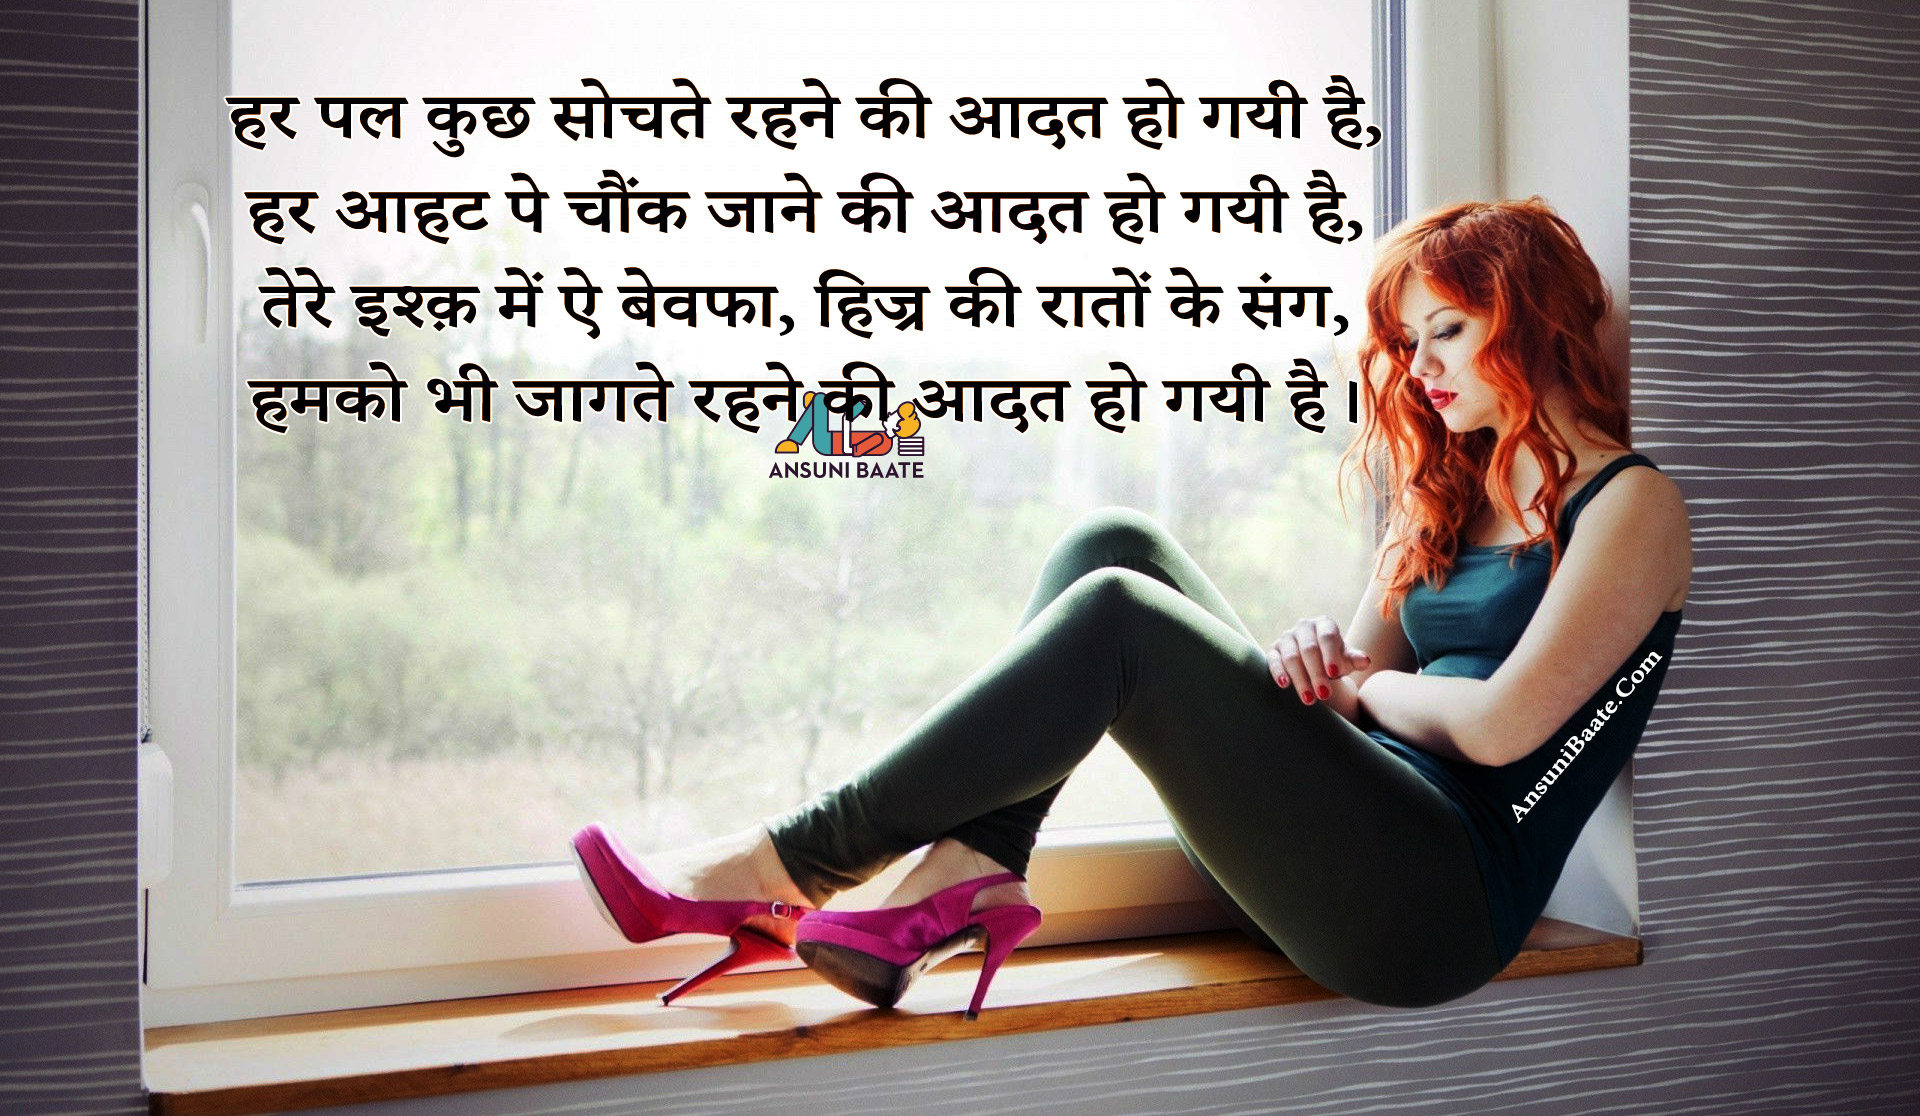 bewafa shayari in hindi for girlfriend boyfriend